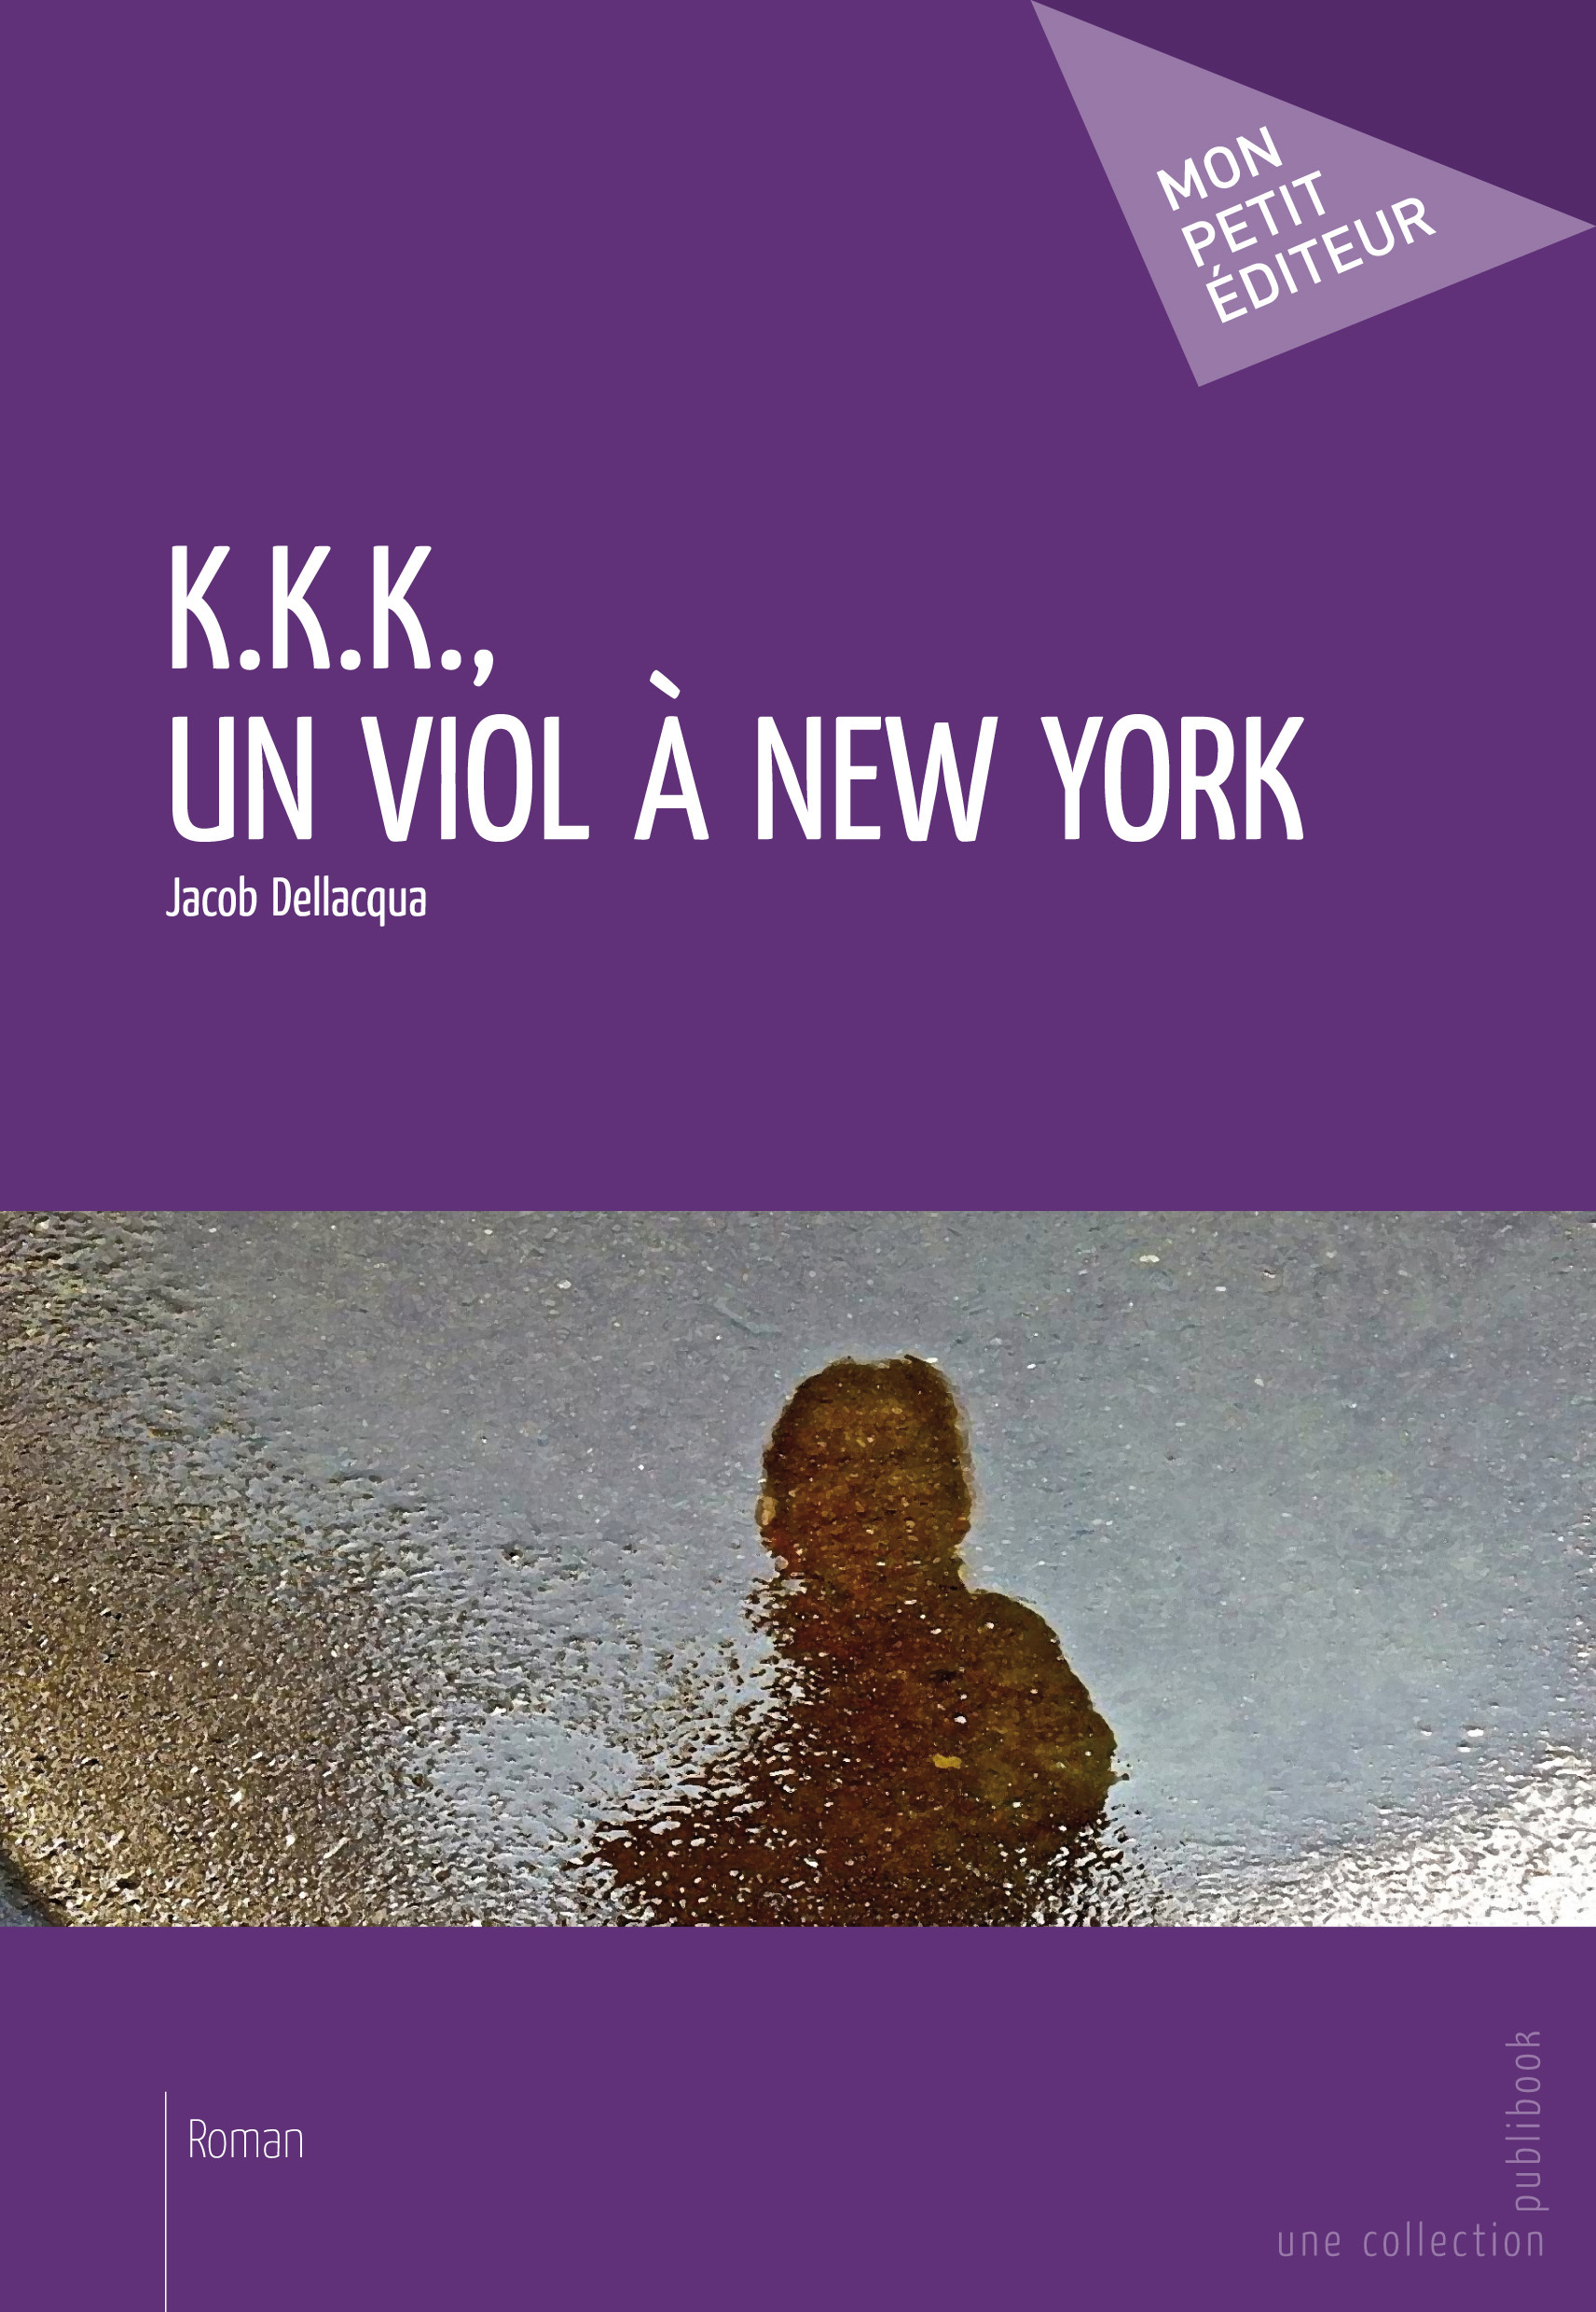 K.K.K., UN VIOL A NEW YORK